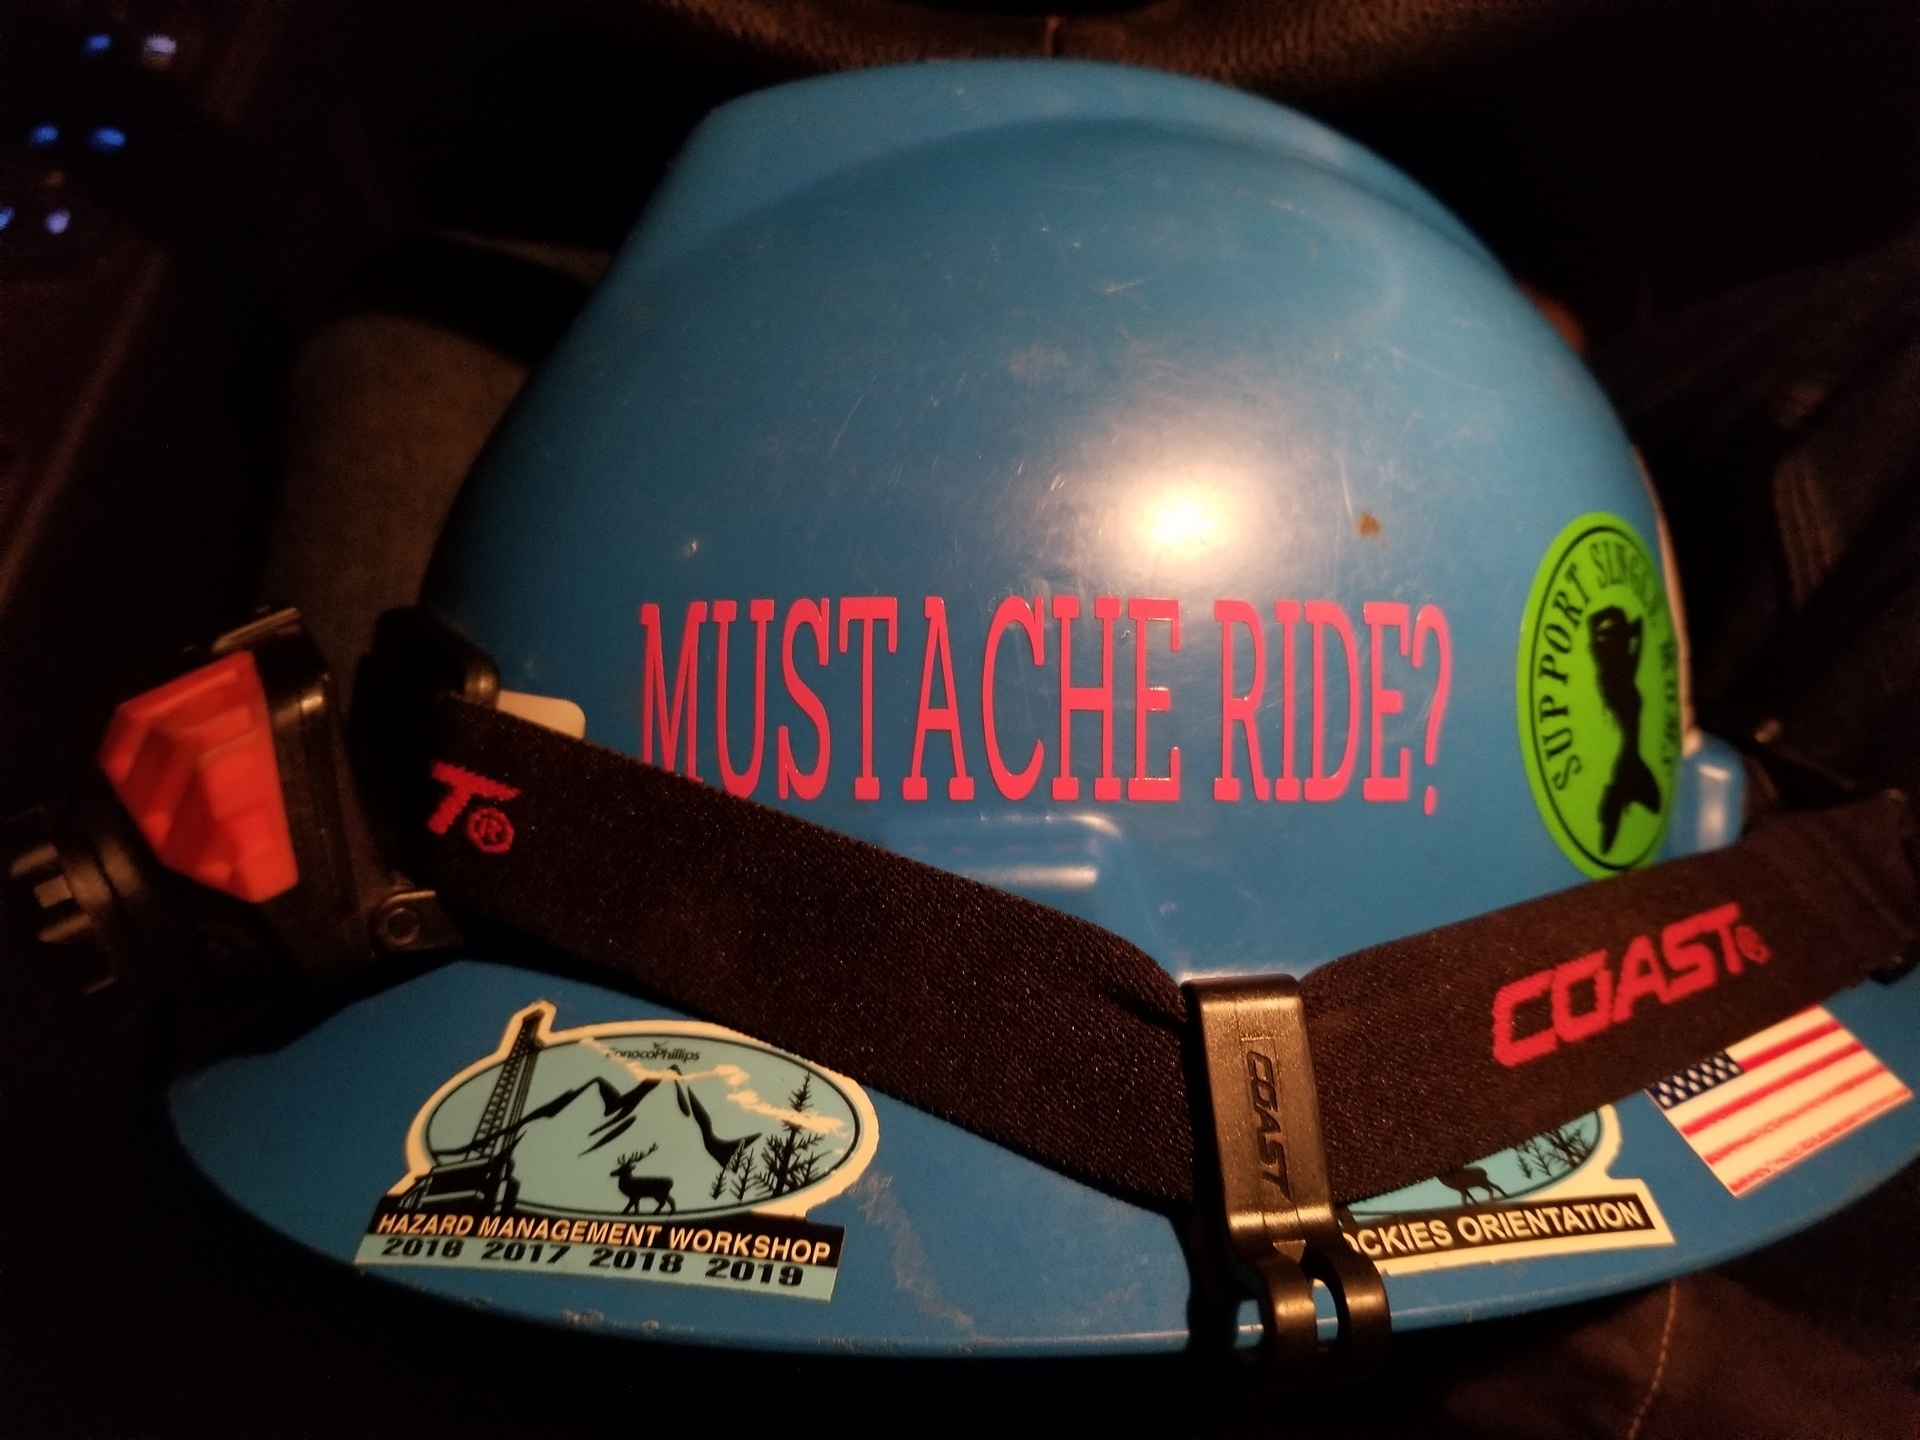 Kyle's photograph of their Hard Hat Stickers